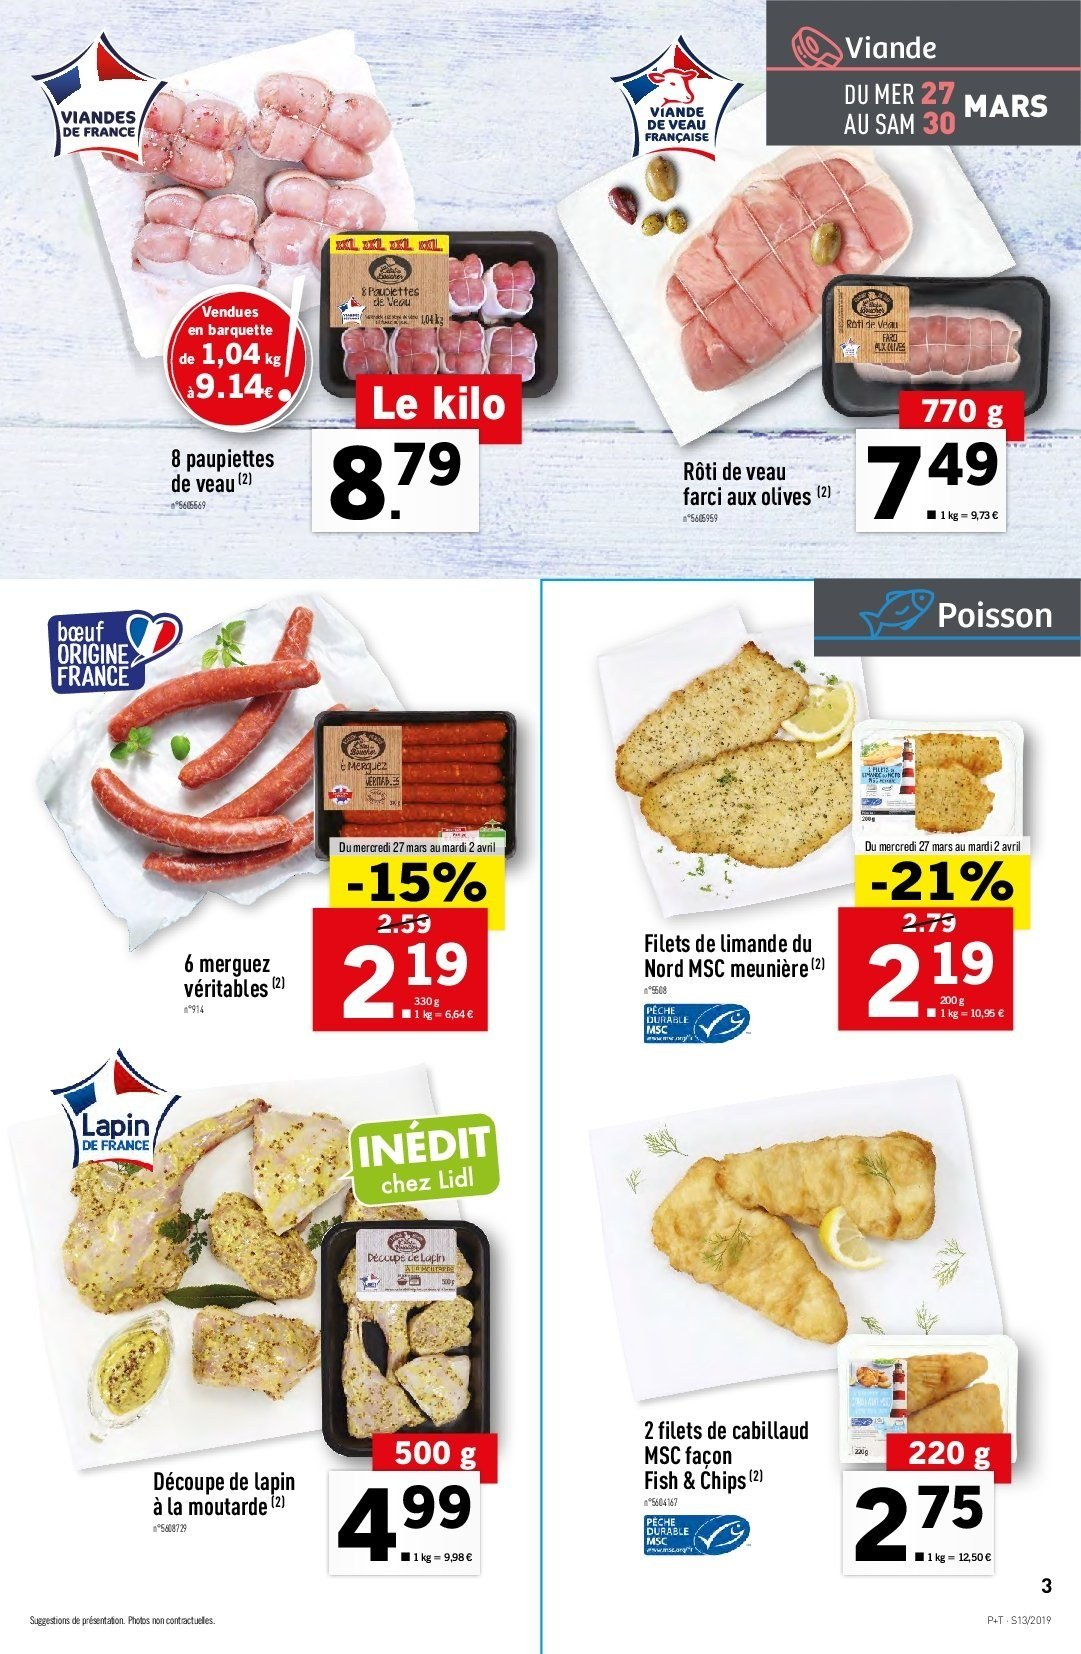 Catalogue Lidl - 27.03.2019 - 02.04.2019. Page 3.